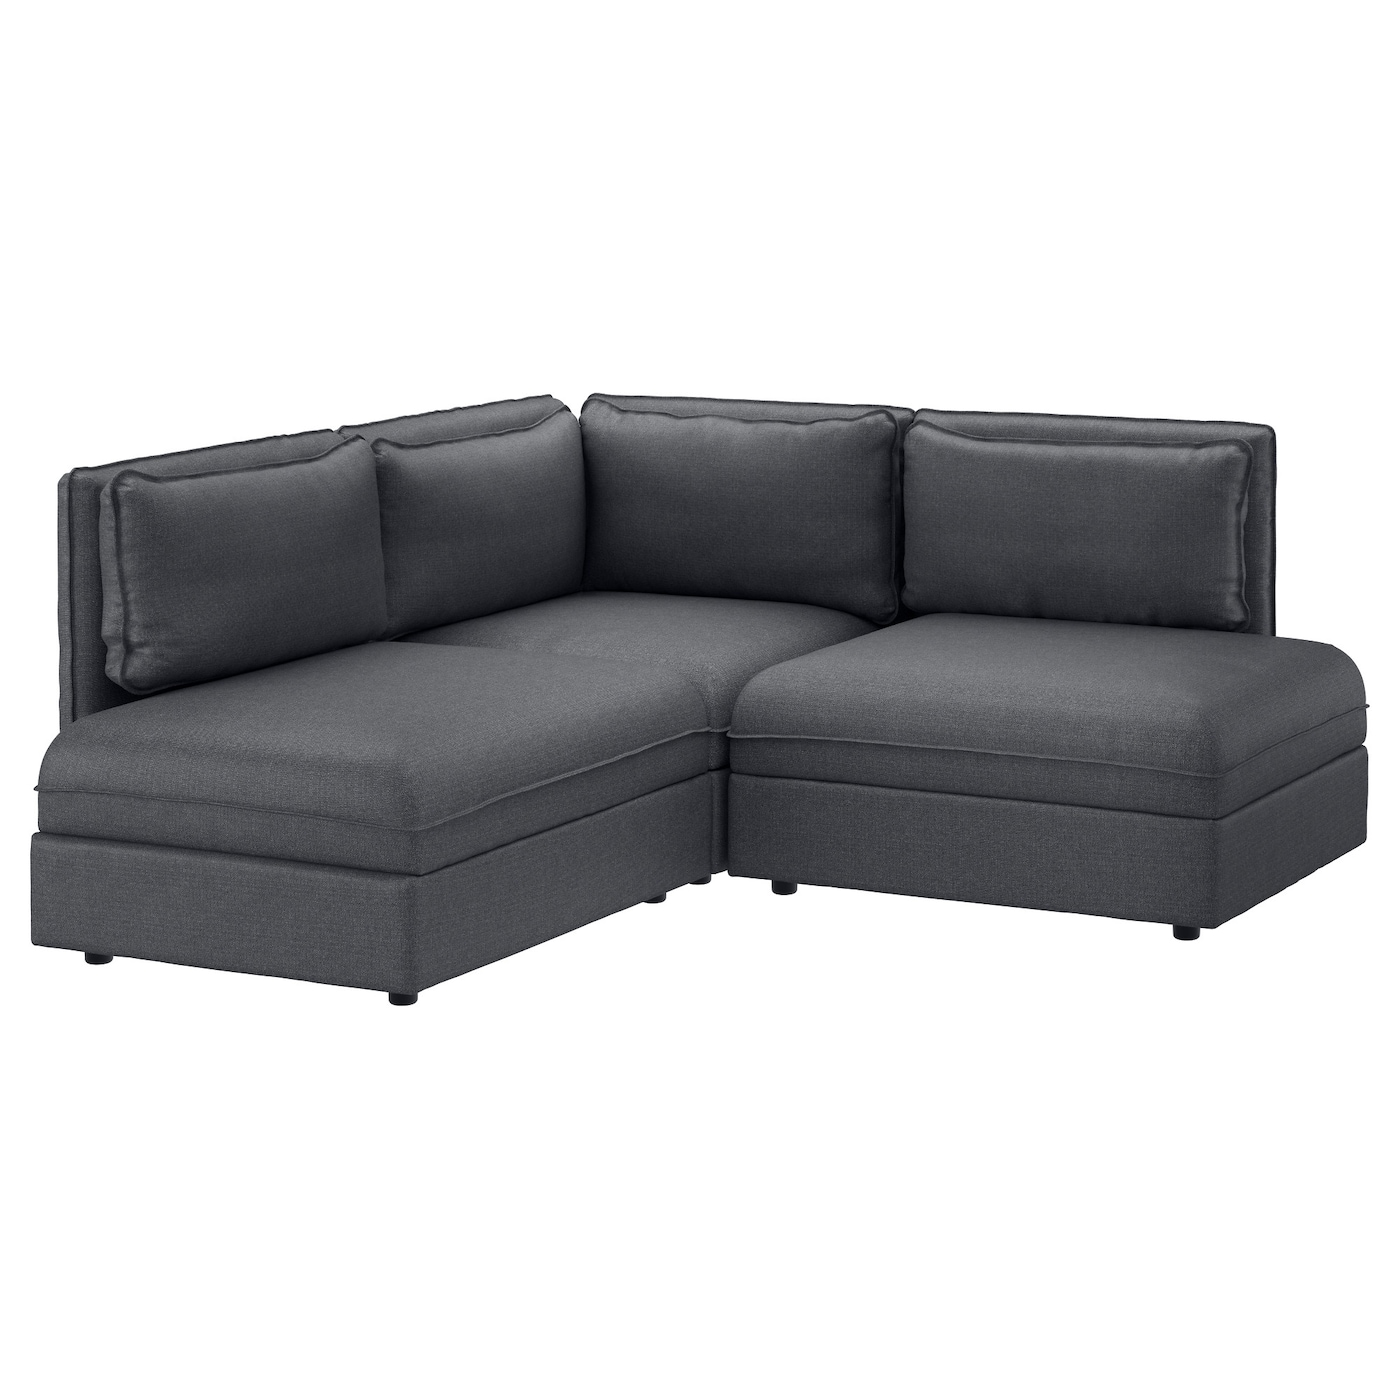 VALLENTUNA 3 Seat Corner Sofa Hillared Dark Grey